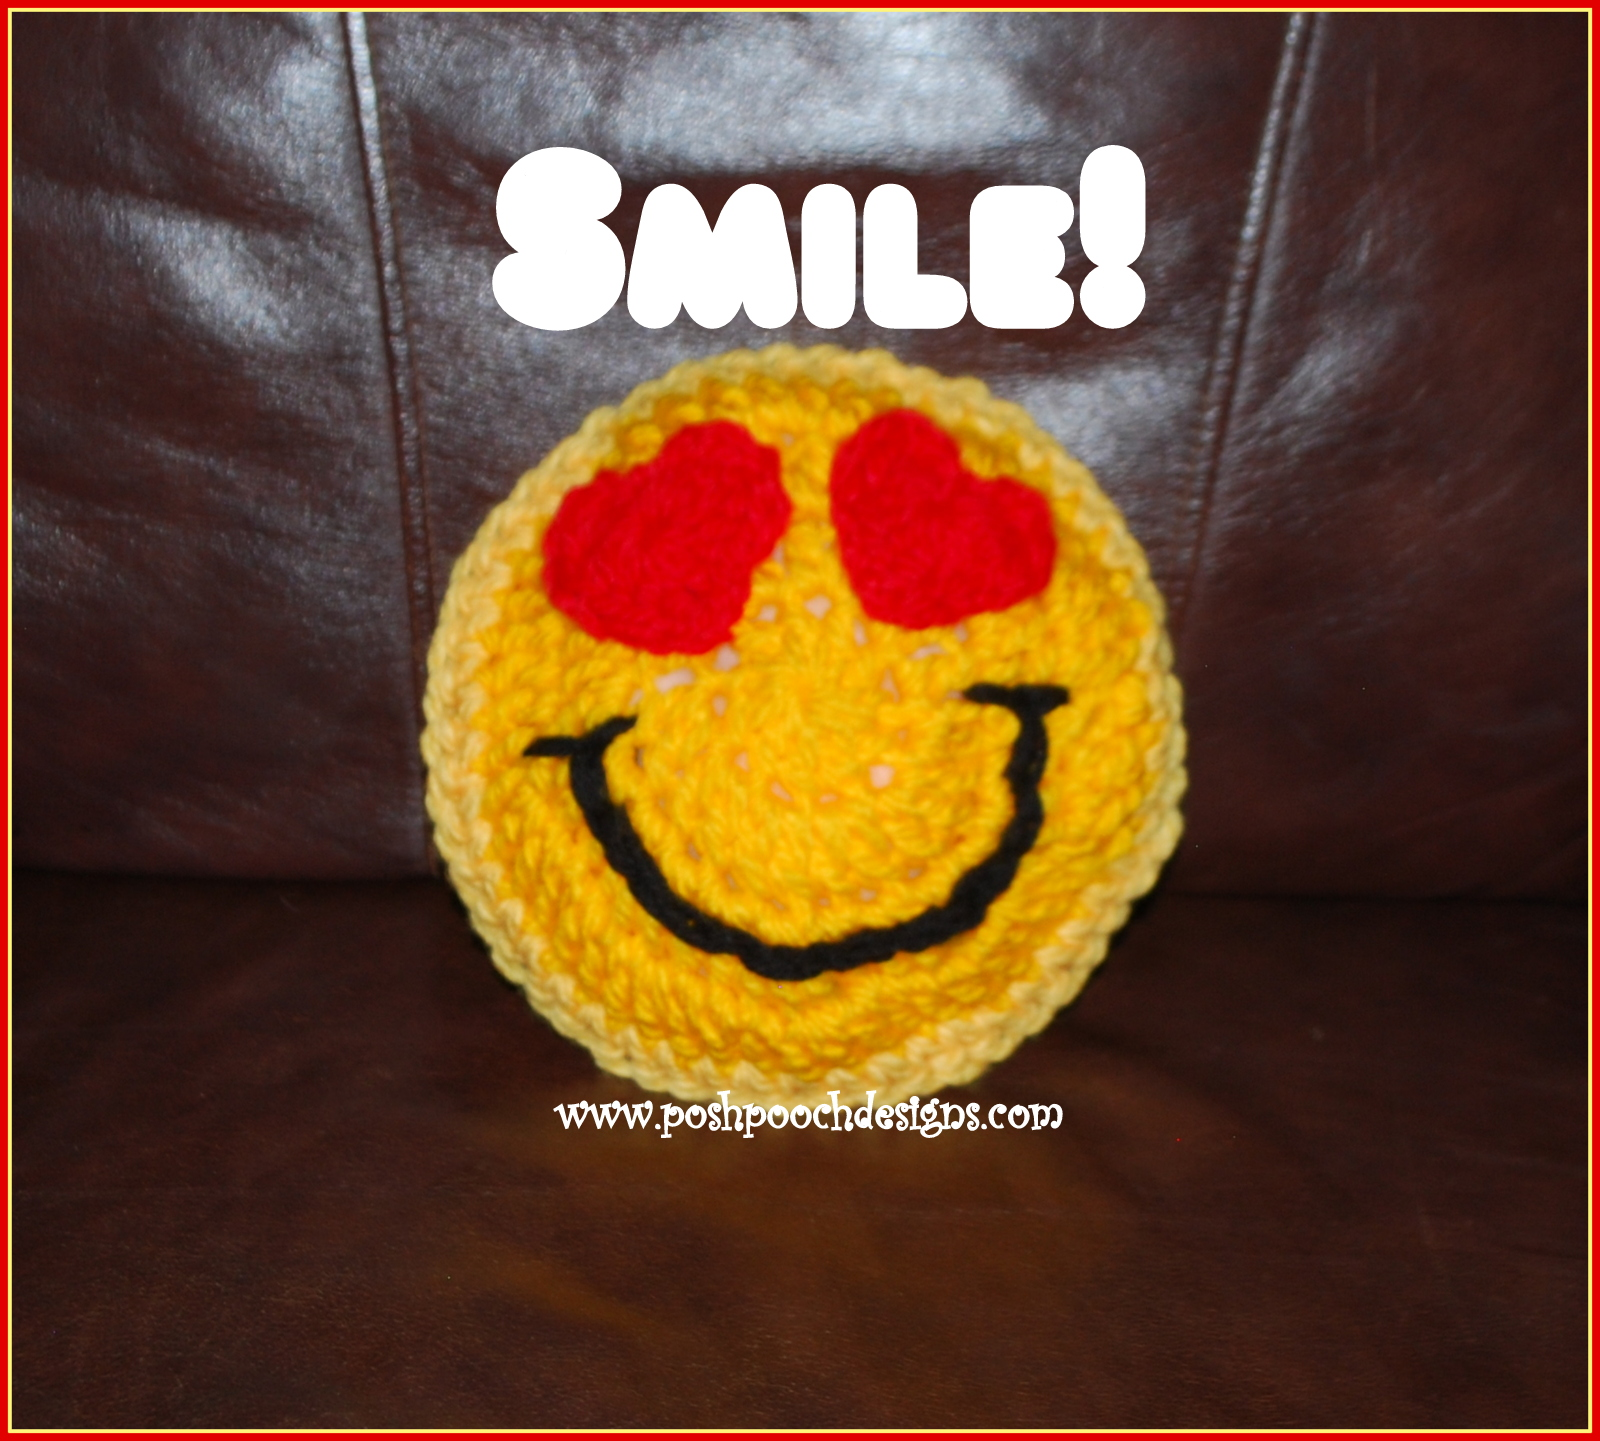 Crocheting Emoji : ... Dog Clothes: Emoji Smile Pillow Crochet Pattern Posh Pooch Designs